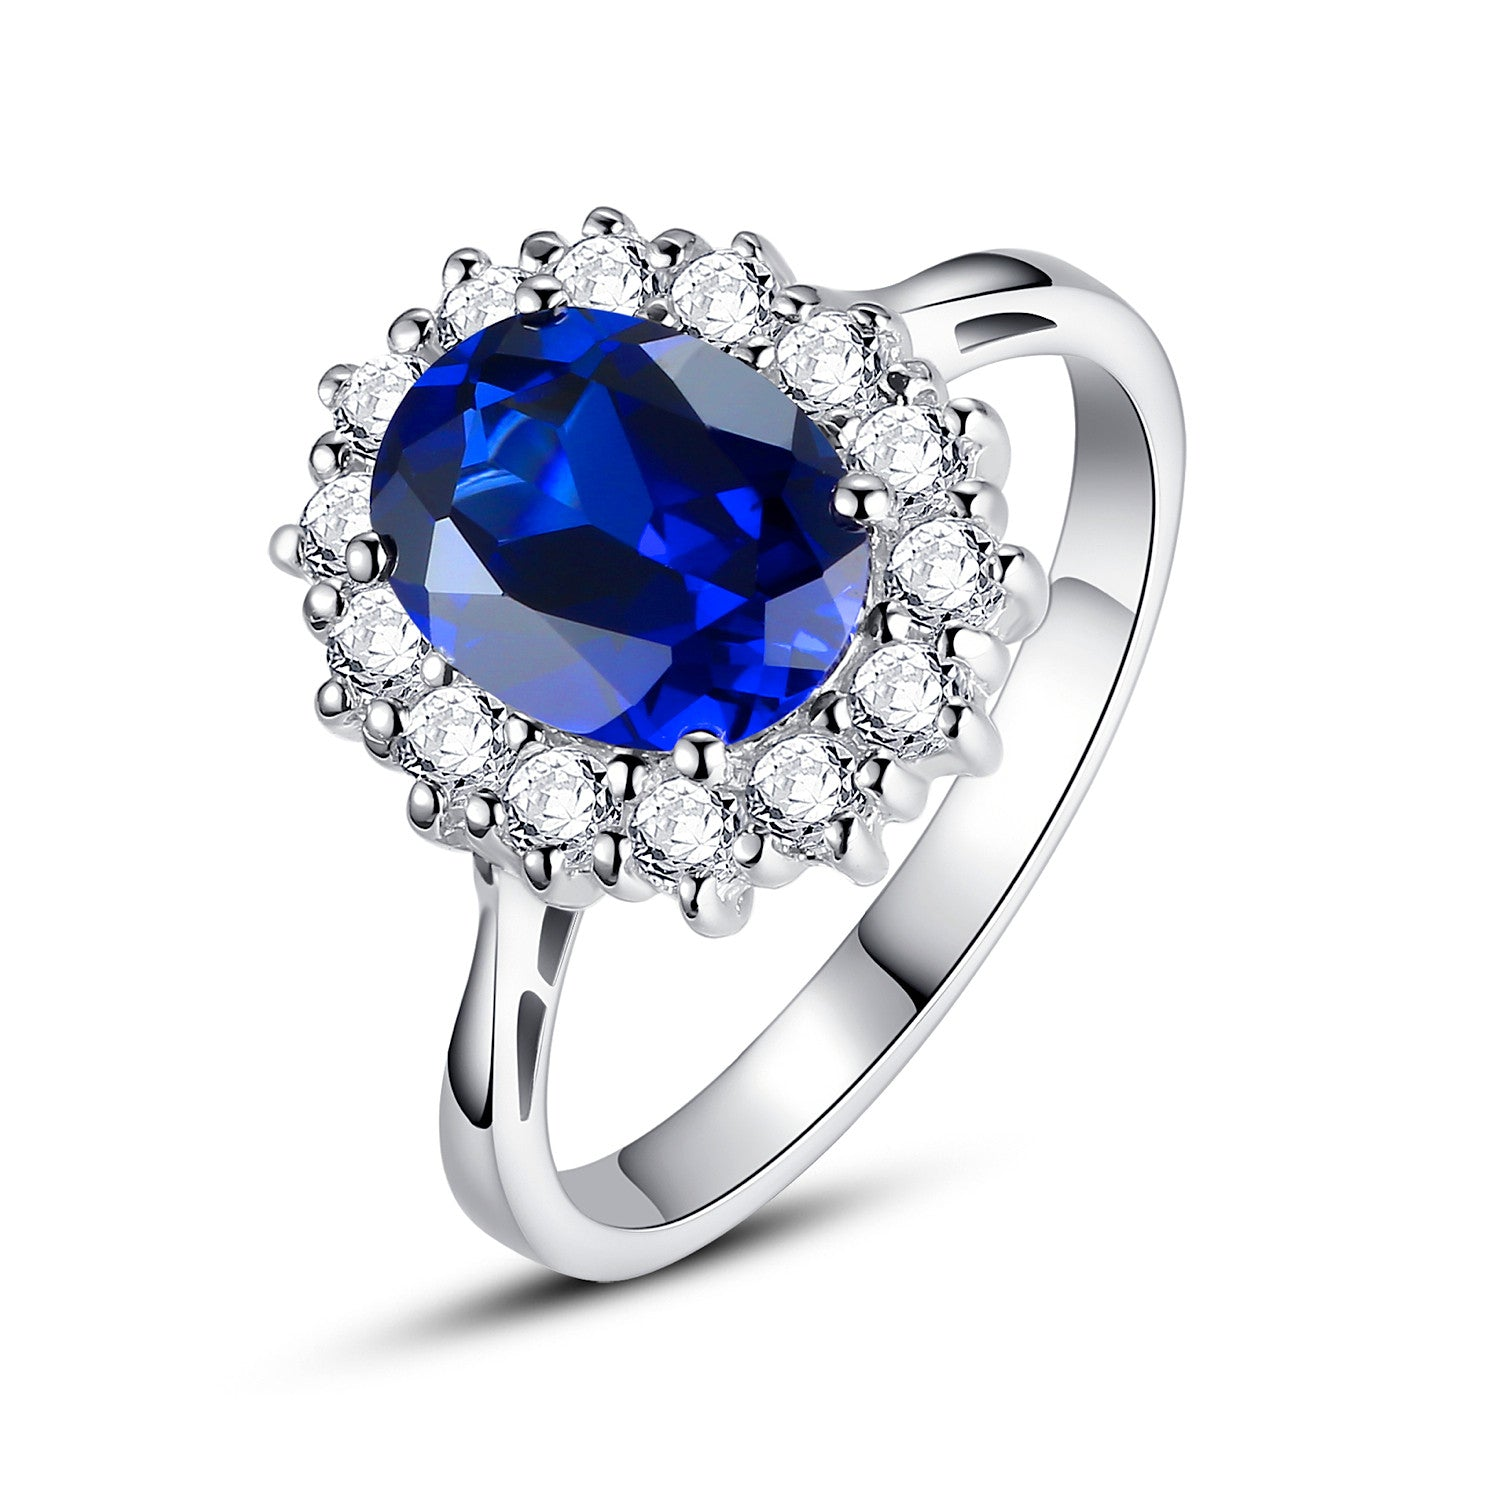 g sapphire w lab ip asteria and rings black ring silver sterling t engagement com carat walmart white created diamond